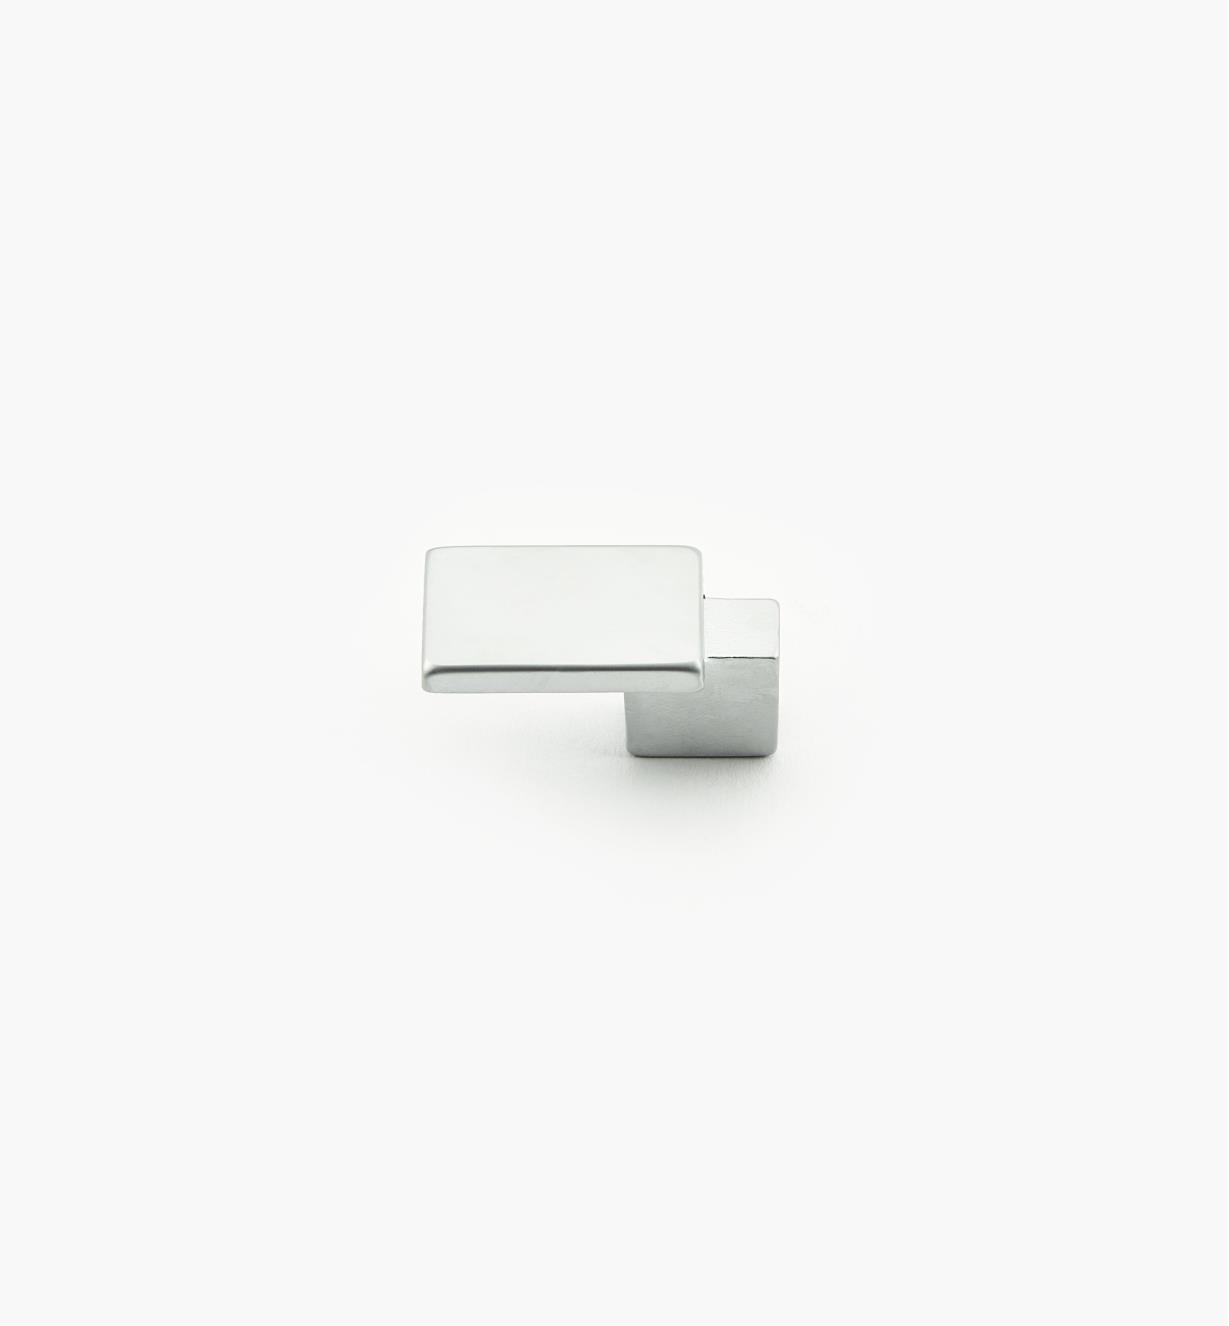 01G1841 - Bridge Hardware - 33mm x 16mm Matte Chrome Knob